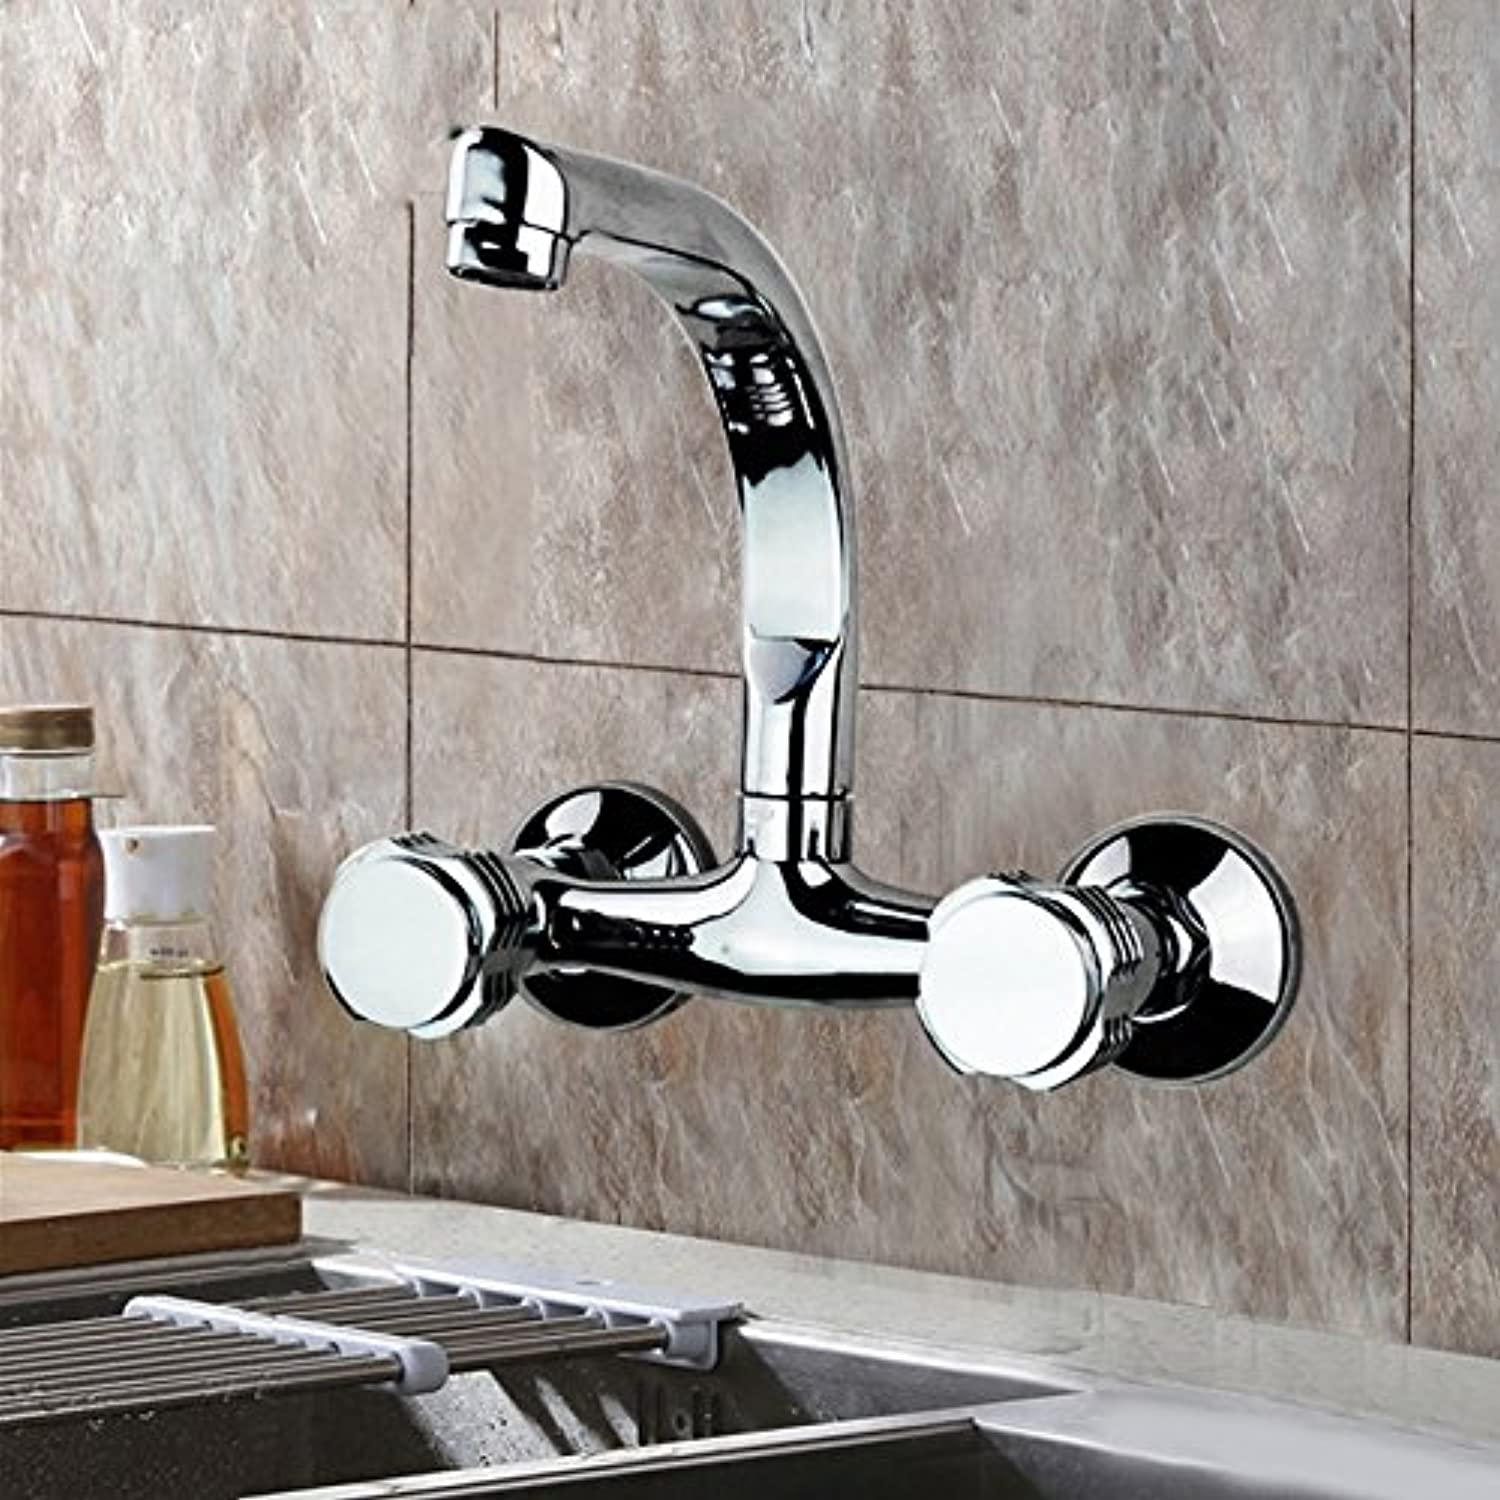 Hlluya Sink Mixer Tap Kitchen Faucet The WALL MOUNTED KITCHEN FAUCET and cold water to wash dishes, pots of water tanks water nozzle balcony double two holes full copper mixing the water valve